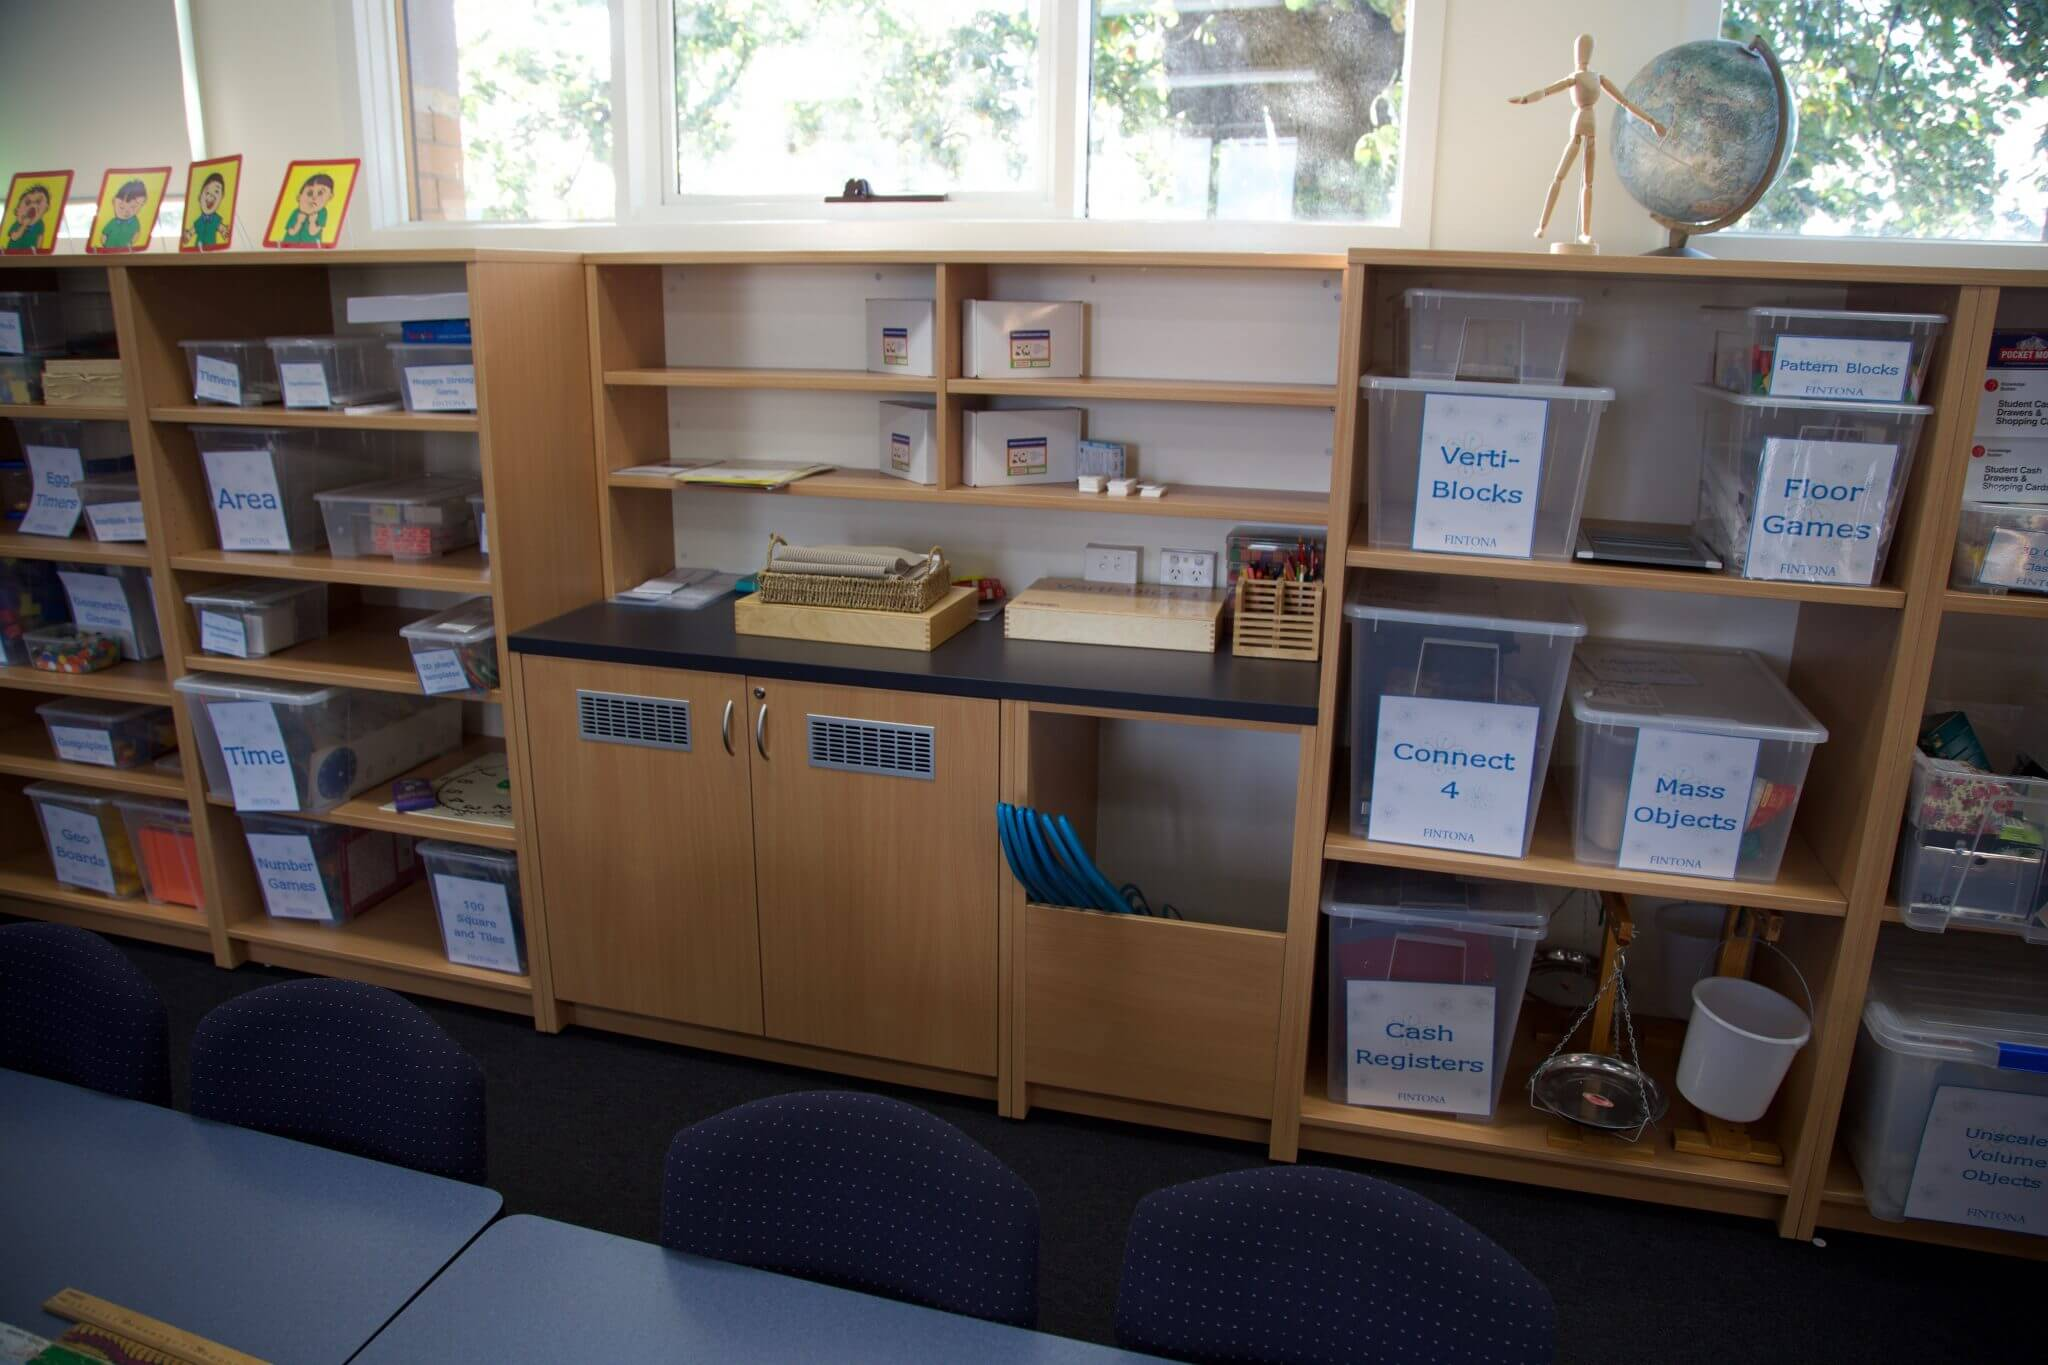 STEM school classroom fitout with cabinetry storing labelled tubs with teaching materials